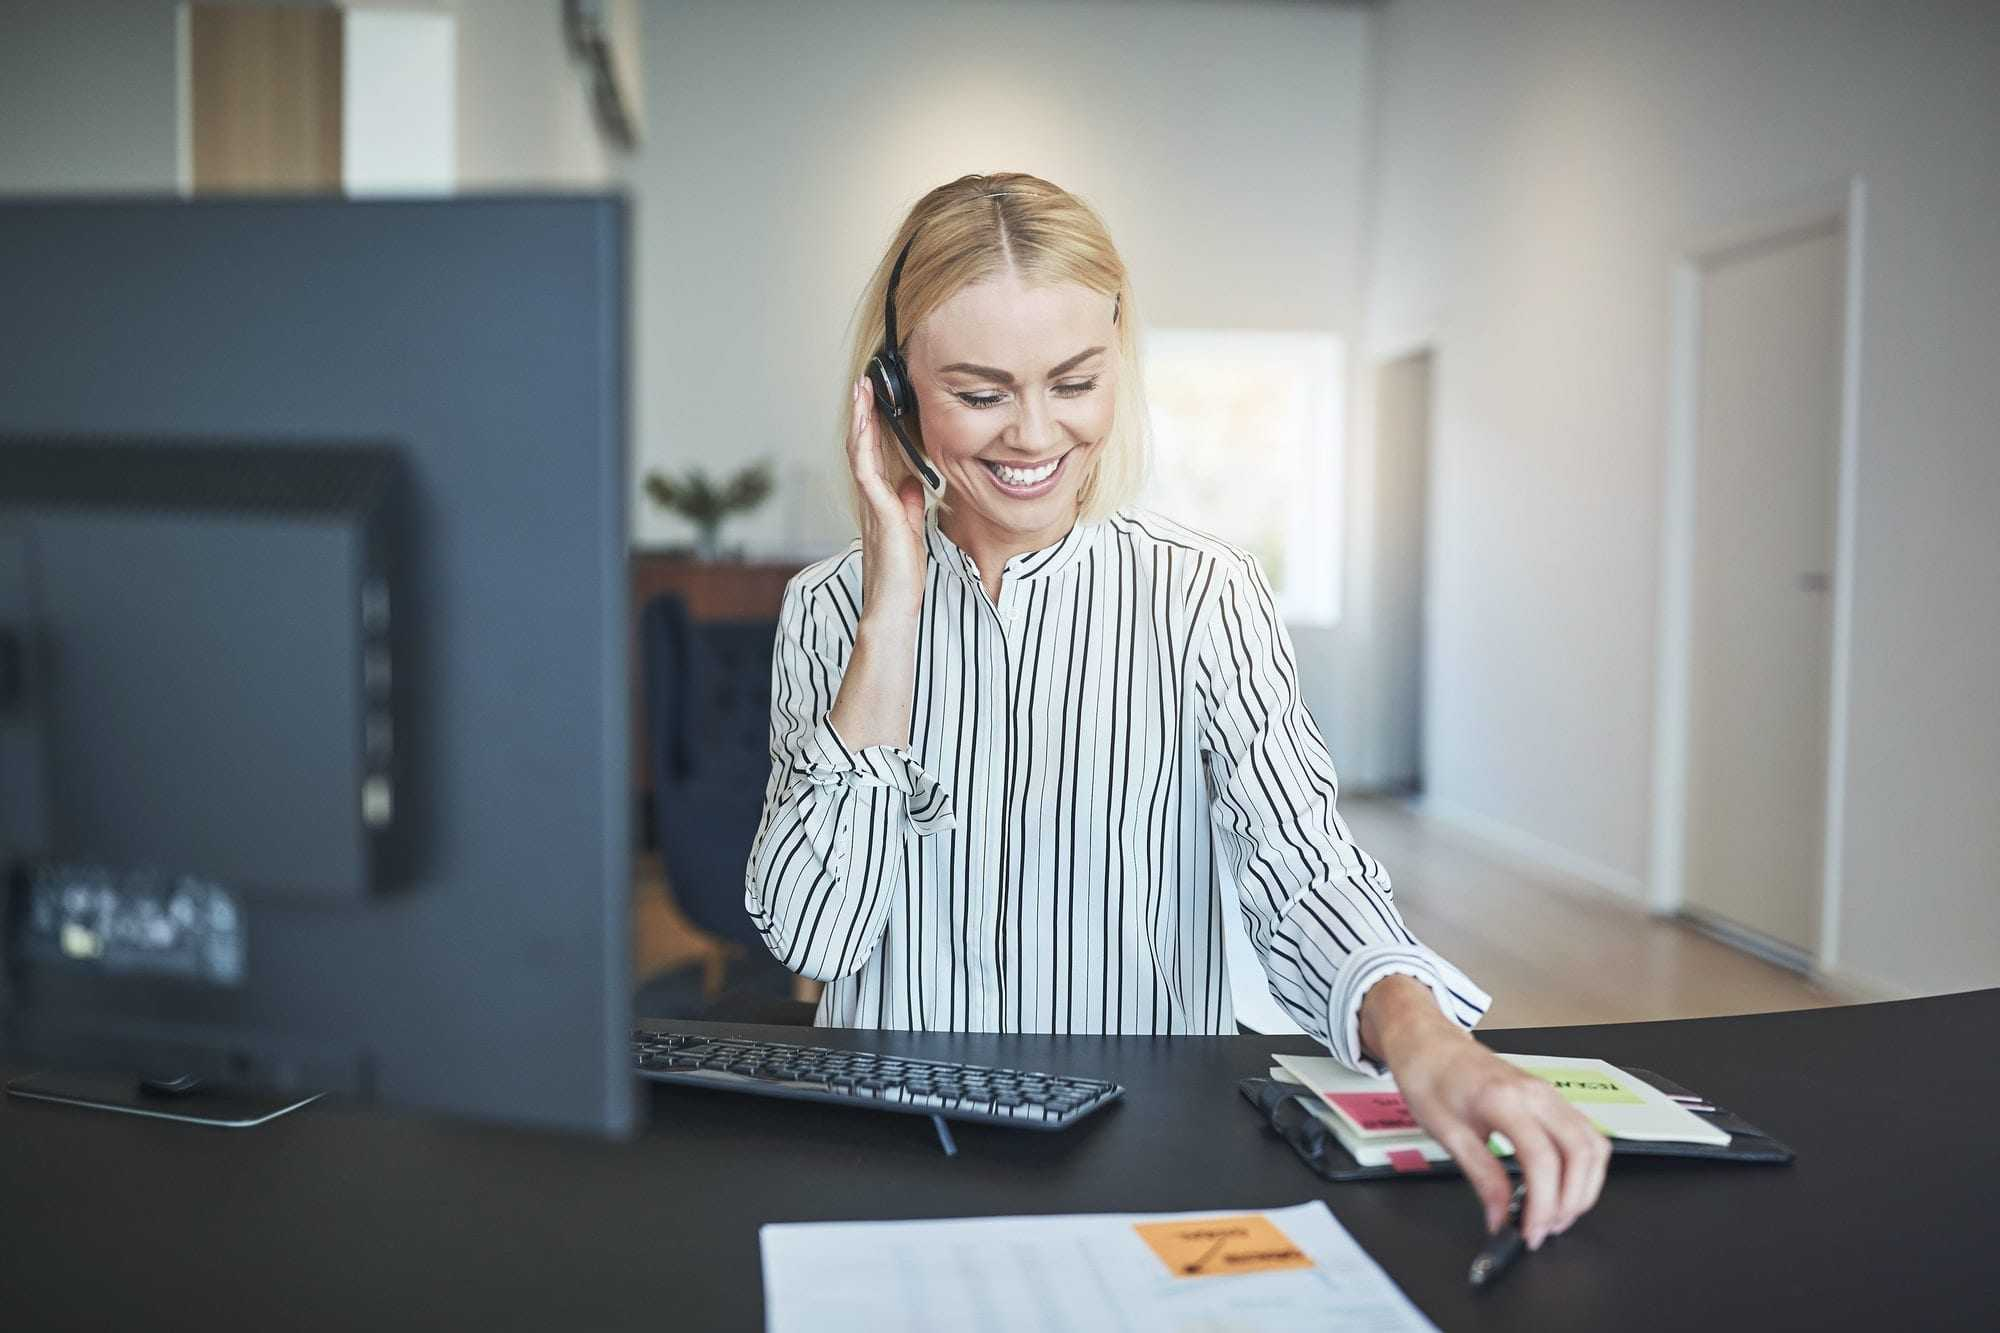 Laughing businesswoman talking on a headset at her office desk